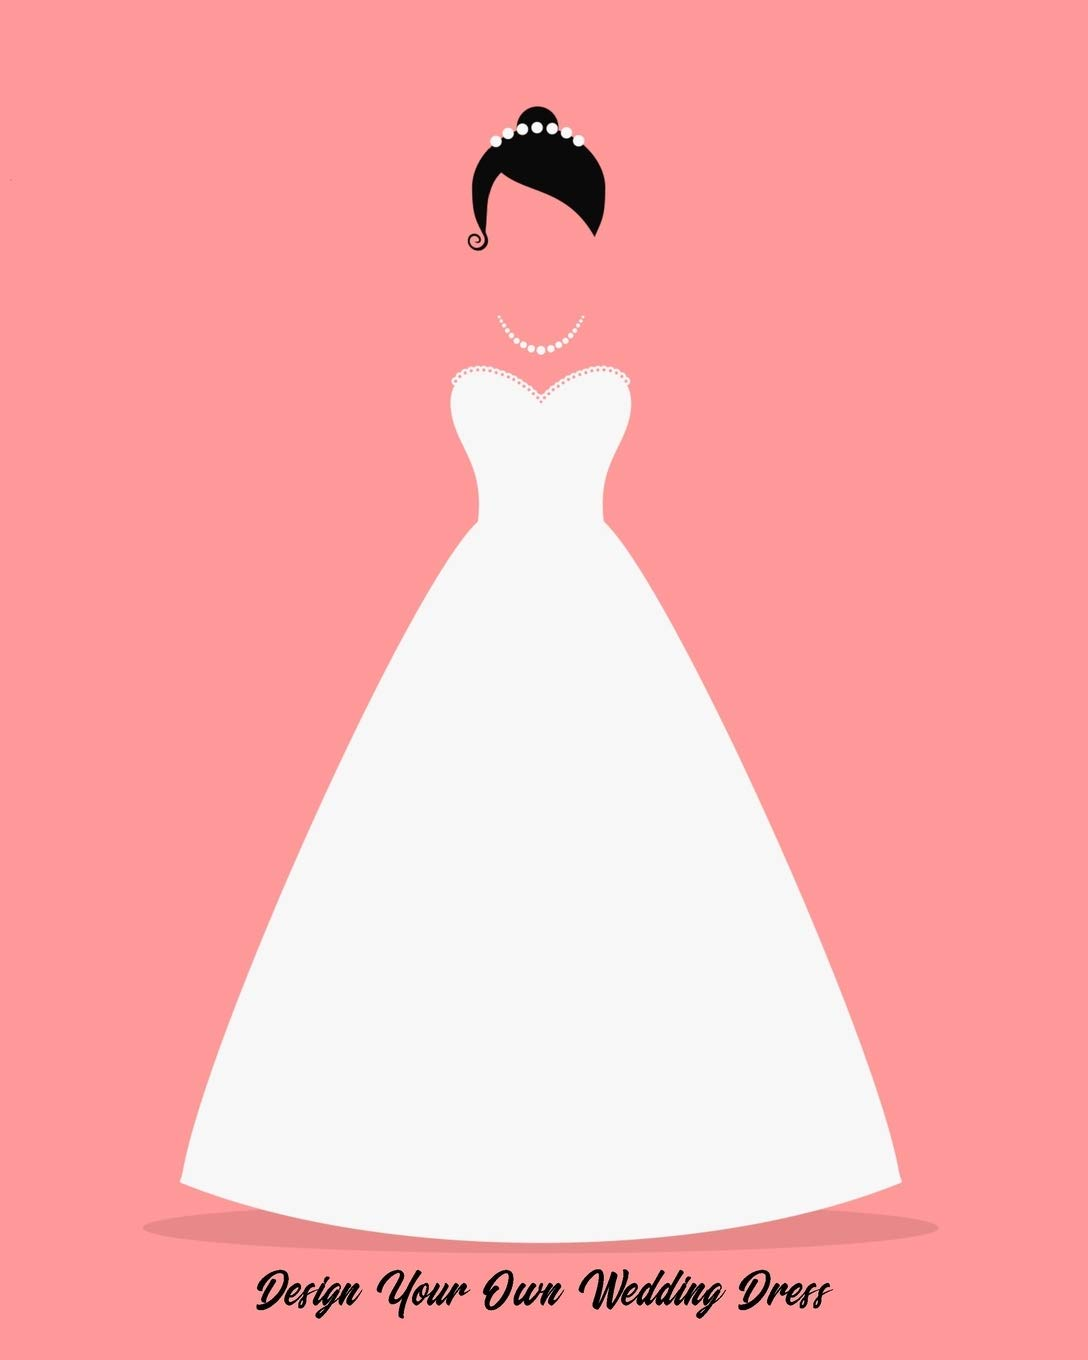 Design Your Own Wedding Dress: Sketchbook with Figure Template to